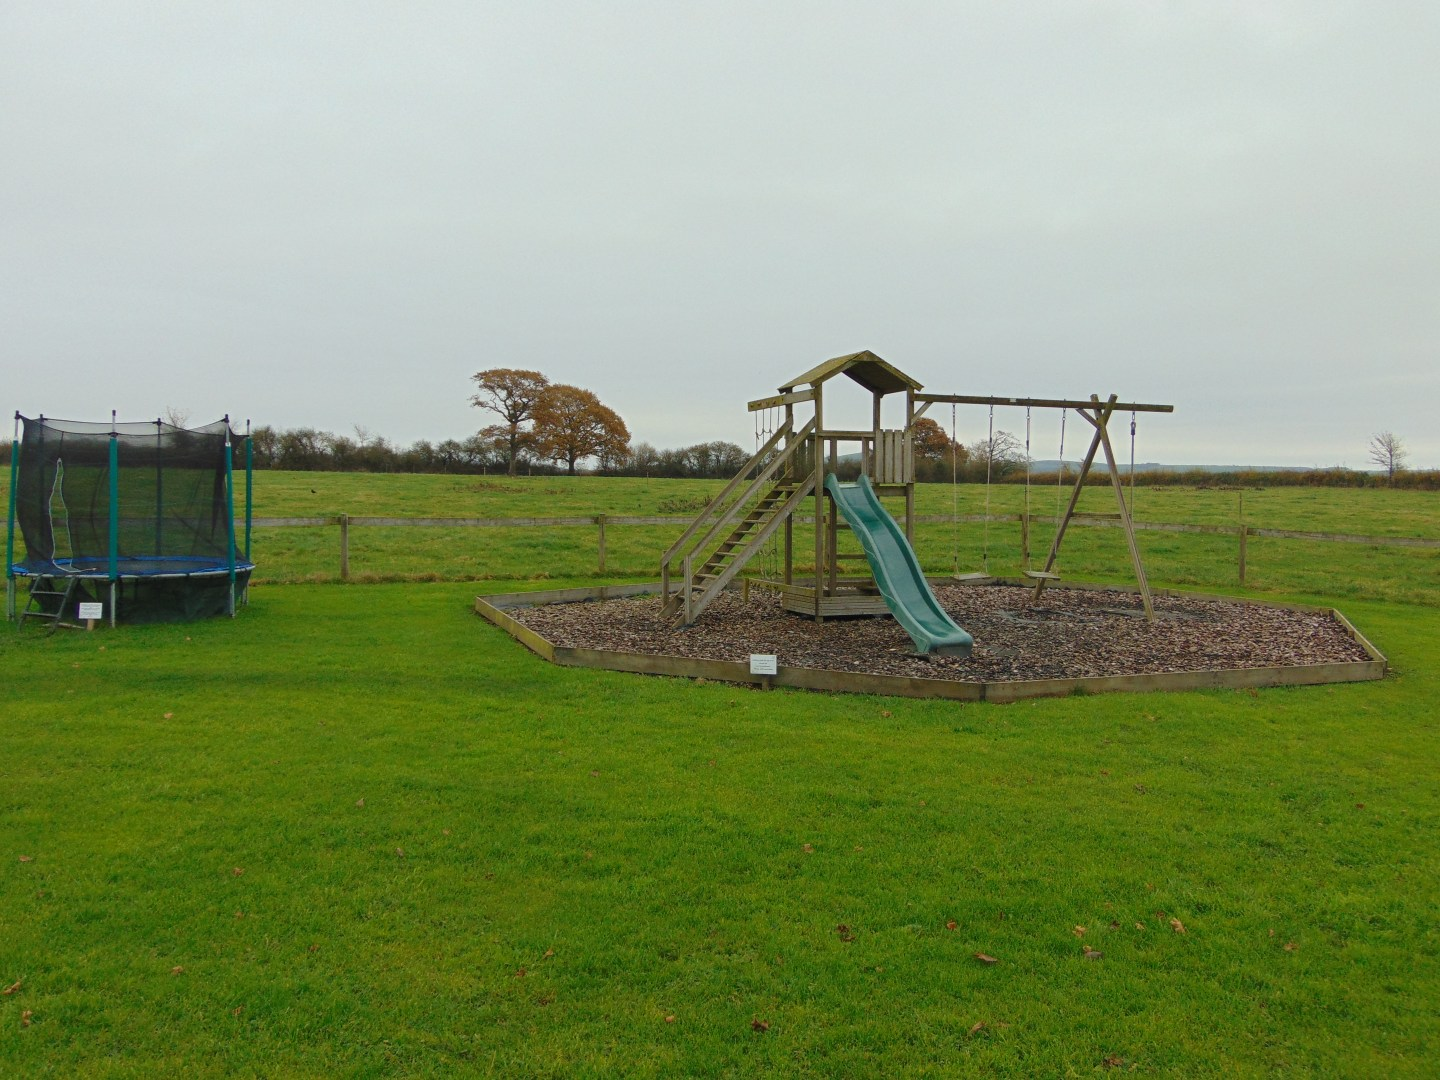 Childrens play area with trampoline and slide